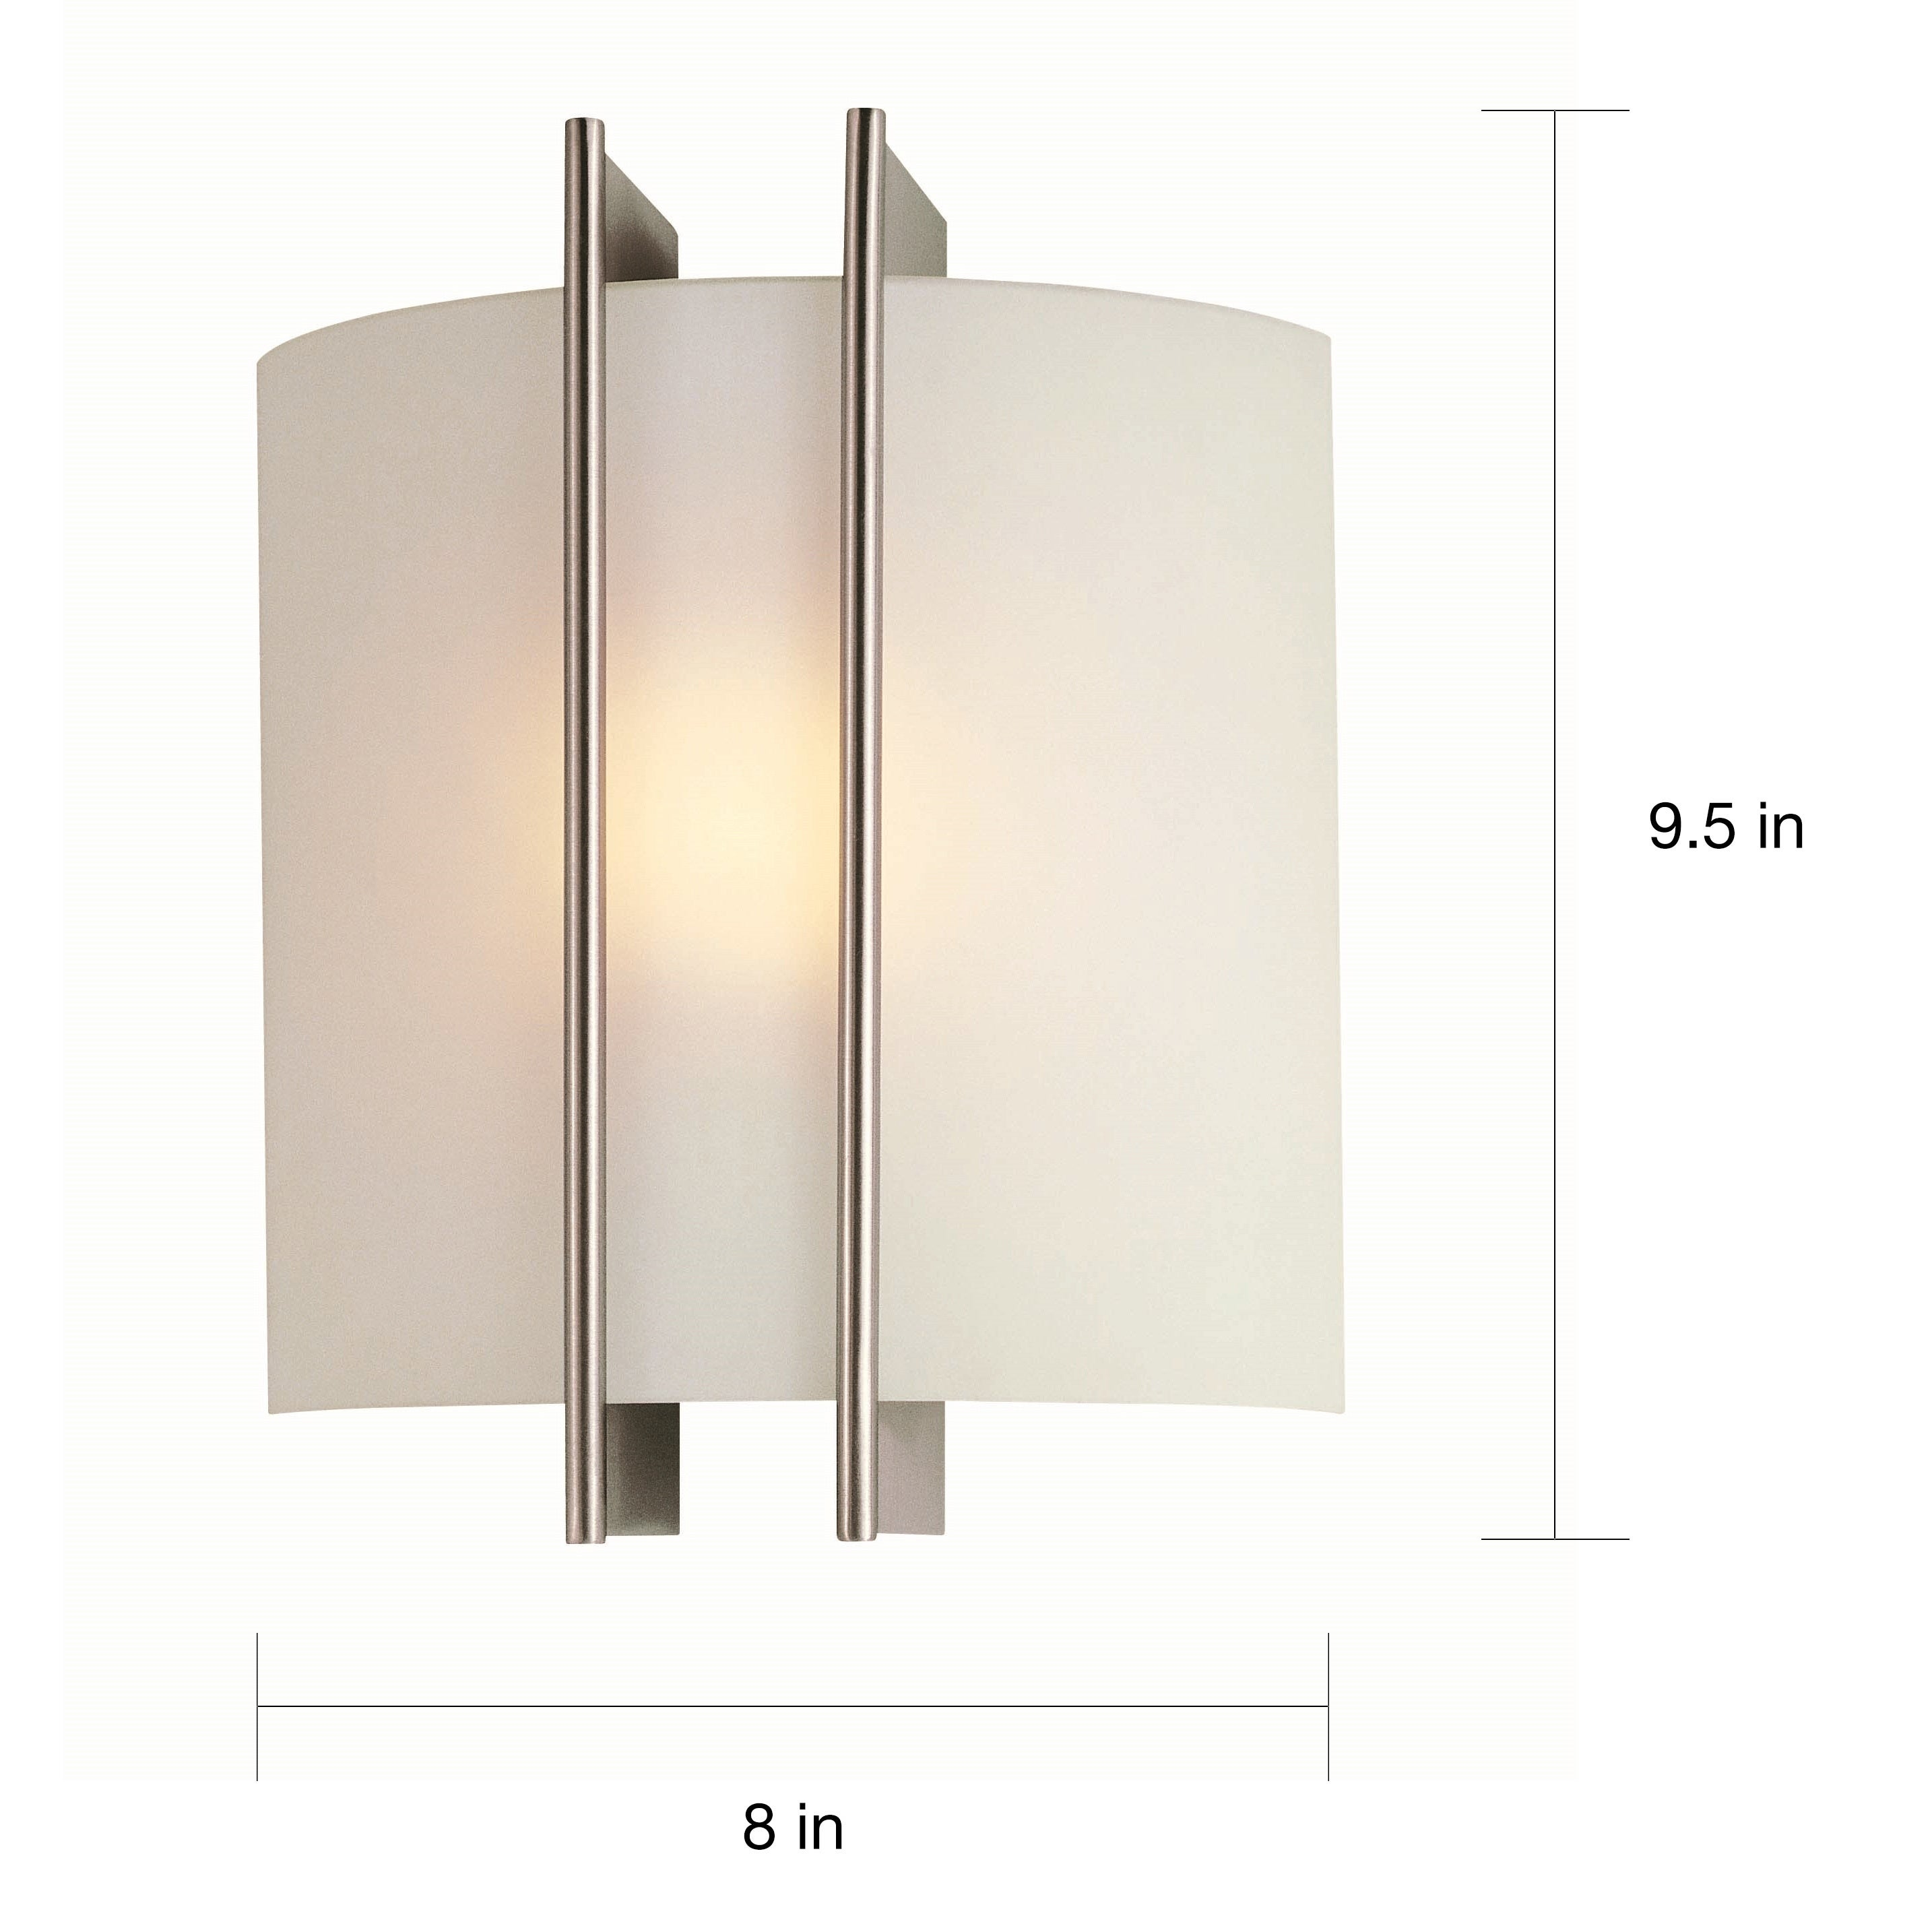 Carson 1 light wall sconce free shipping today overstock carson 1 light wall sconce free shipping today overstock 16541895 arubaitofo Choice Image